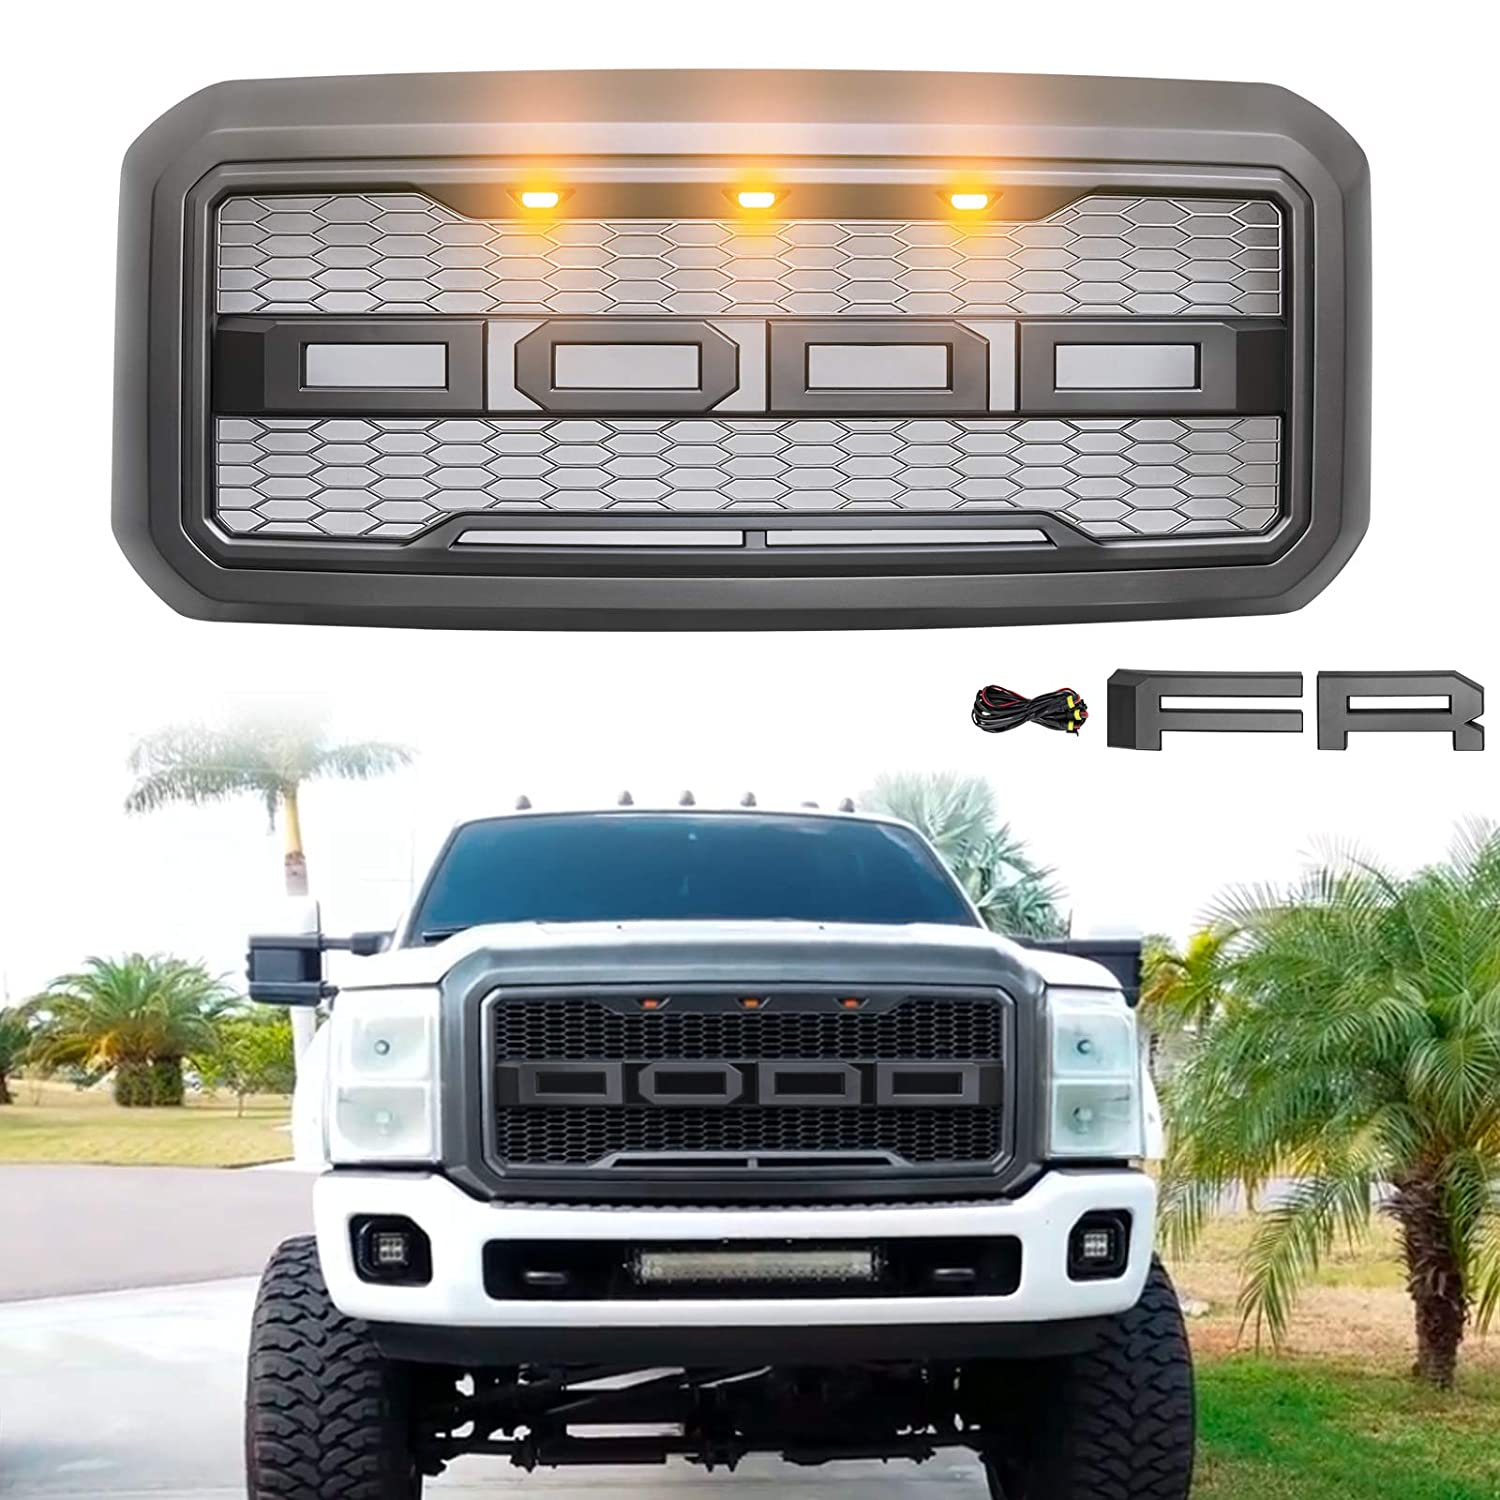 Modifying Ford Front Grille for 2011-2016 Ford F-250 F-350 F-450 F-550 Raptor Style Grill with 3 LED Amber Lights